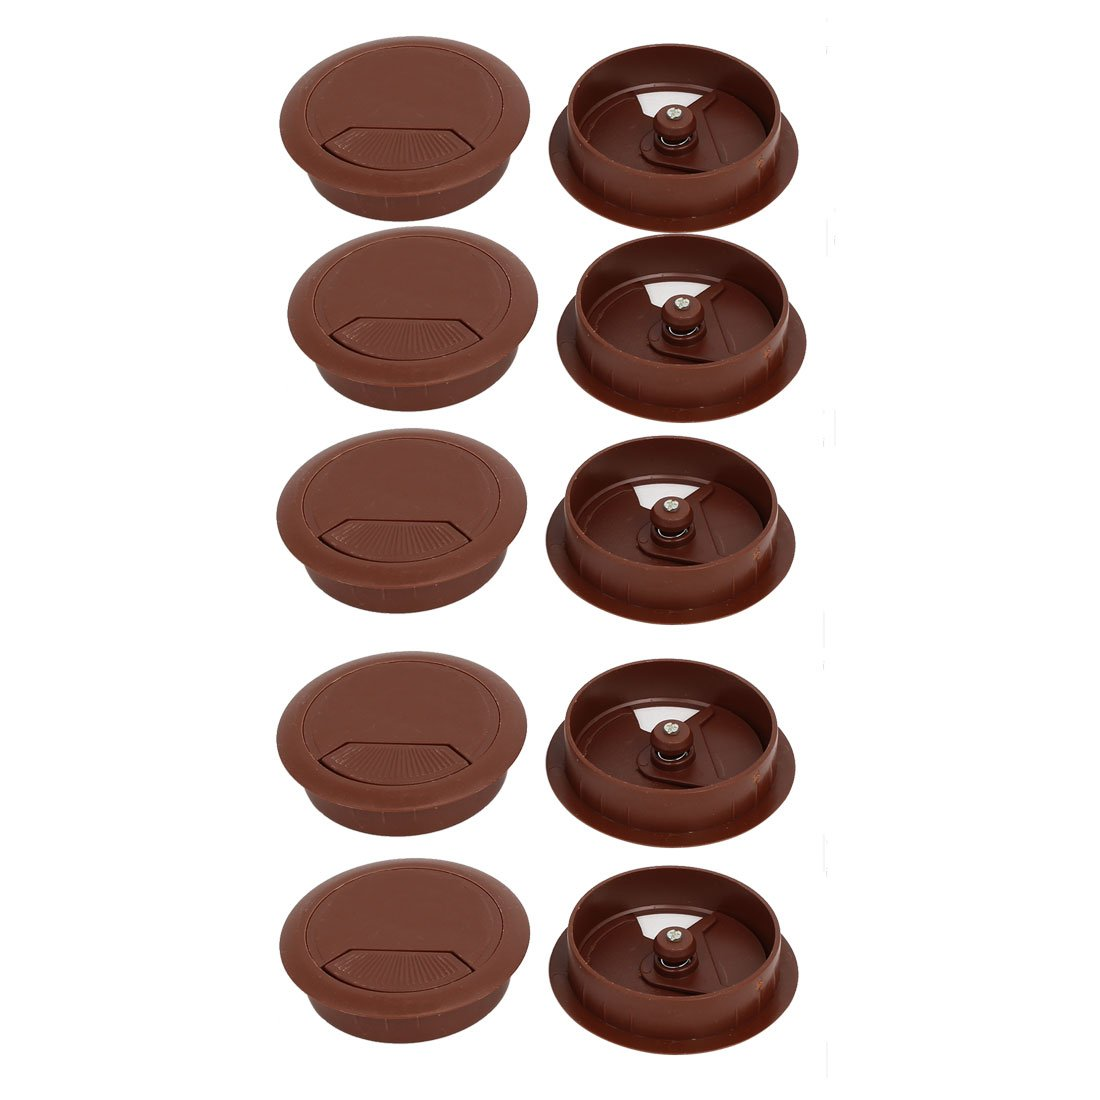 uxcell Computer Desk 60mm Dia Plastic Adjustable Grommet Cable Hole Cover Brown 10pcs